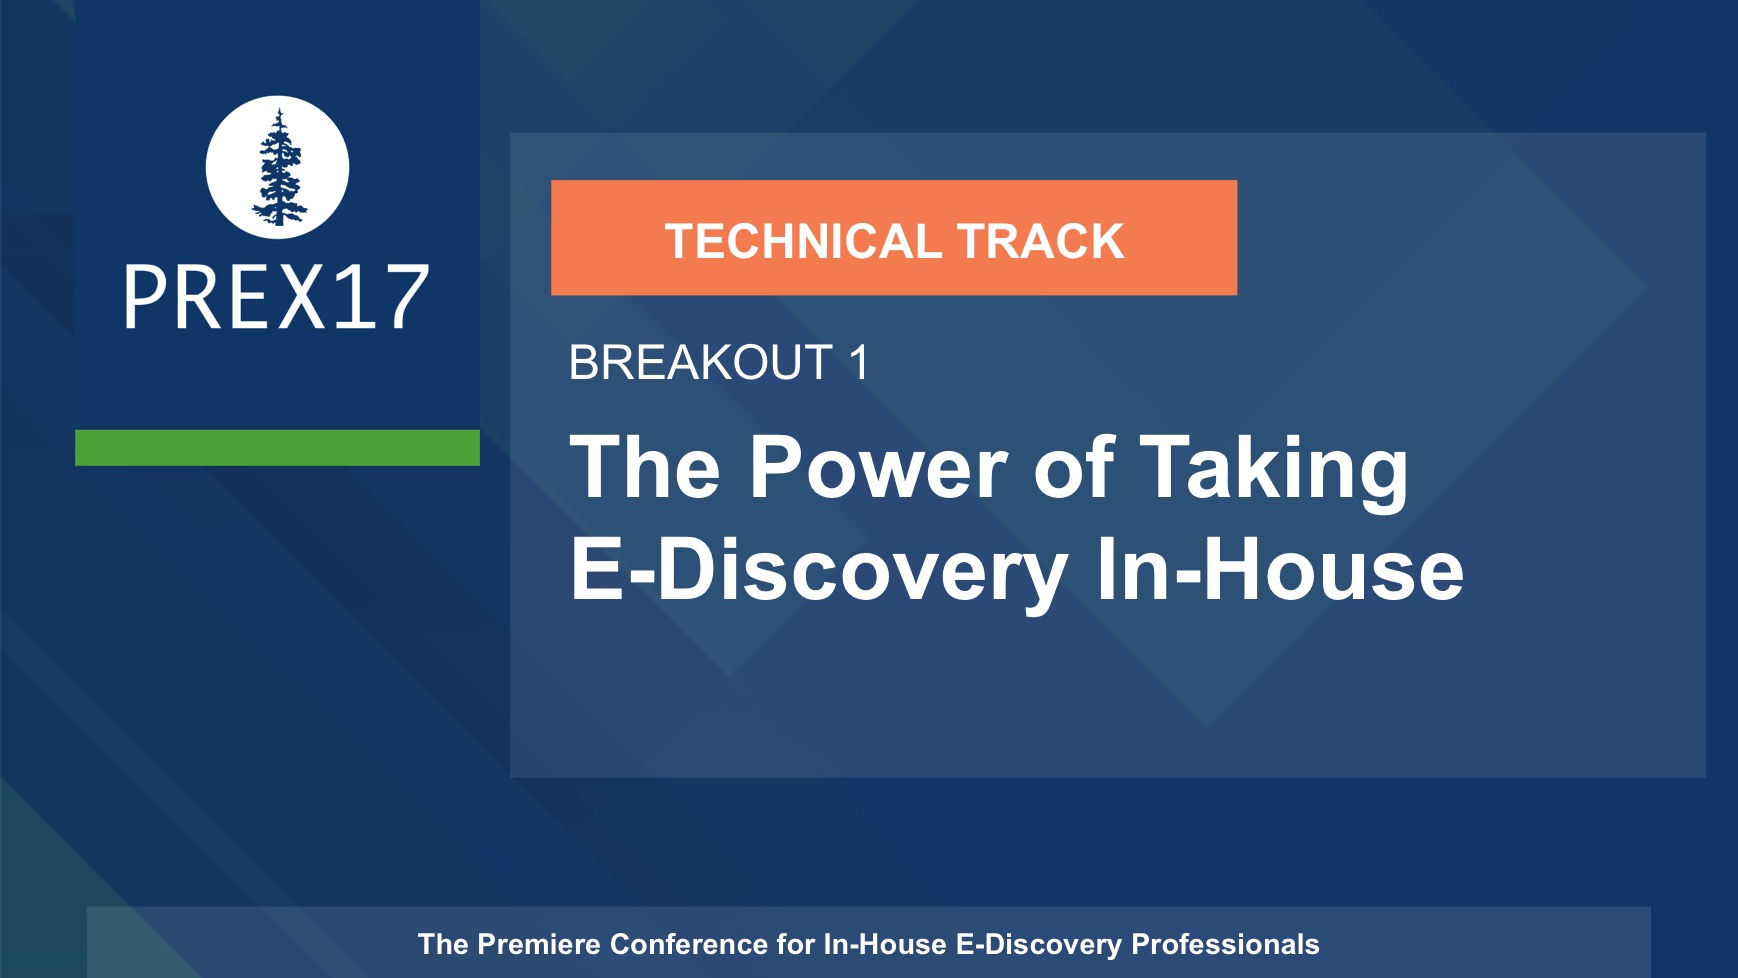 (Breakout 1 - Technical) The Power of Taking E-Discovery In-House